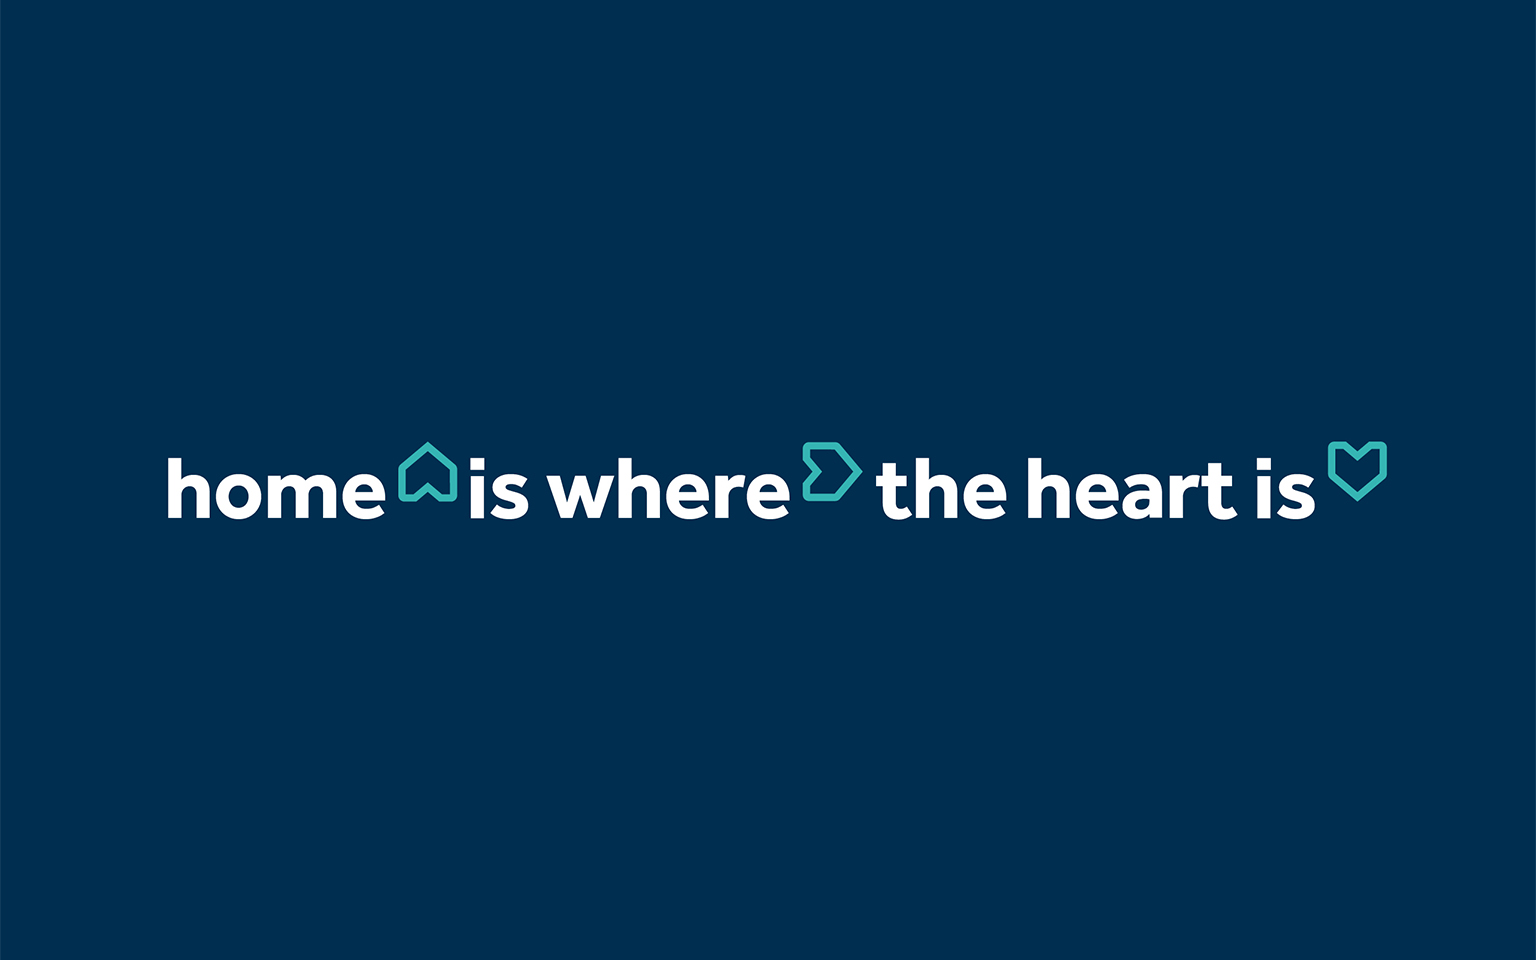 Rightmove Home is where the heart is